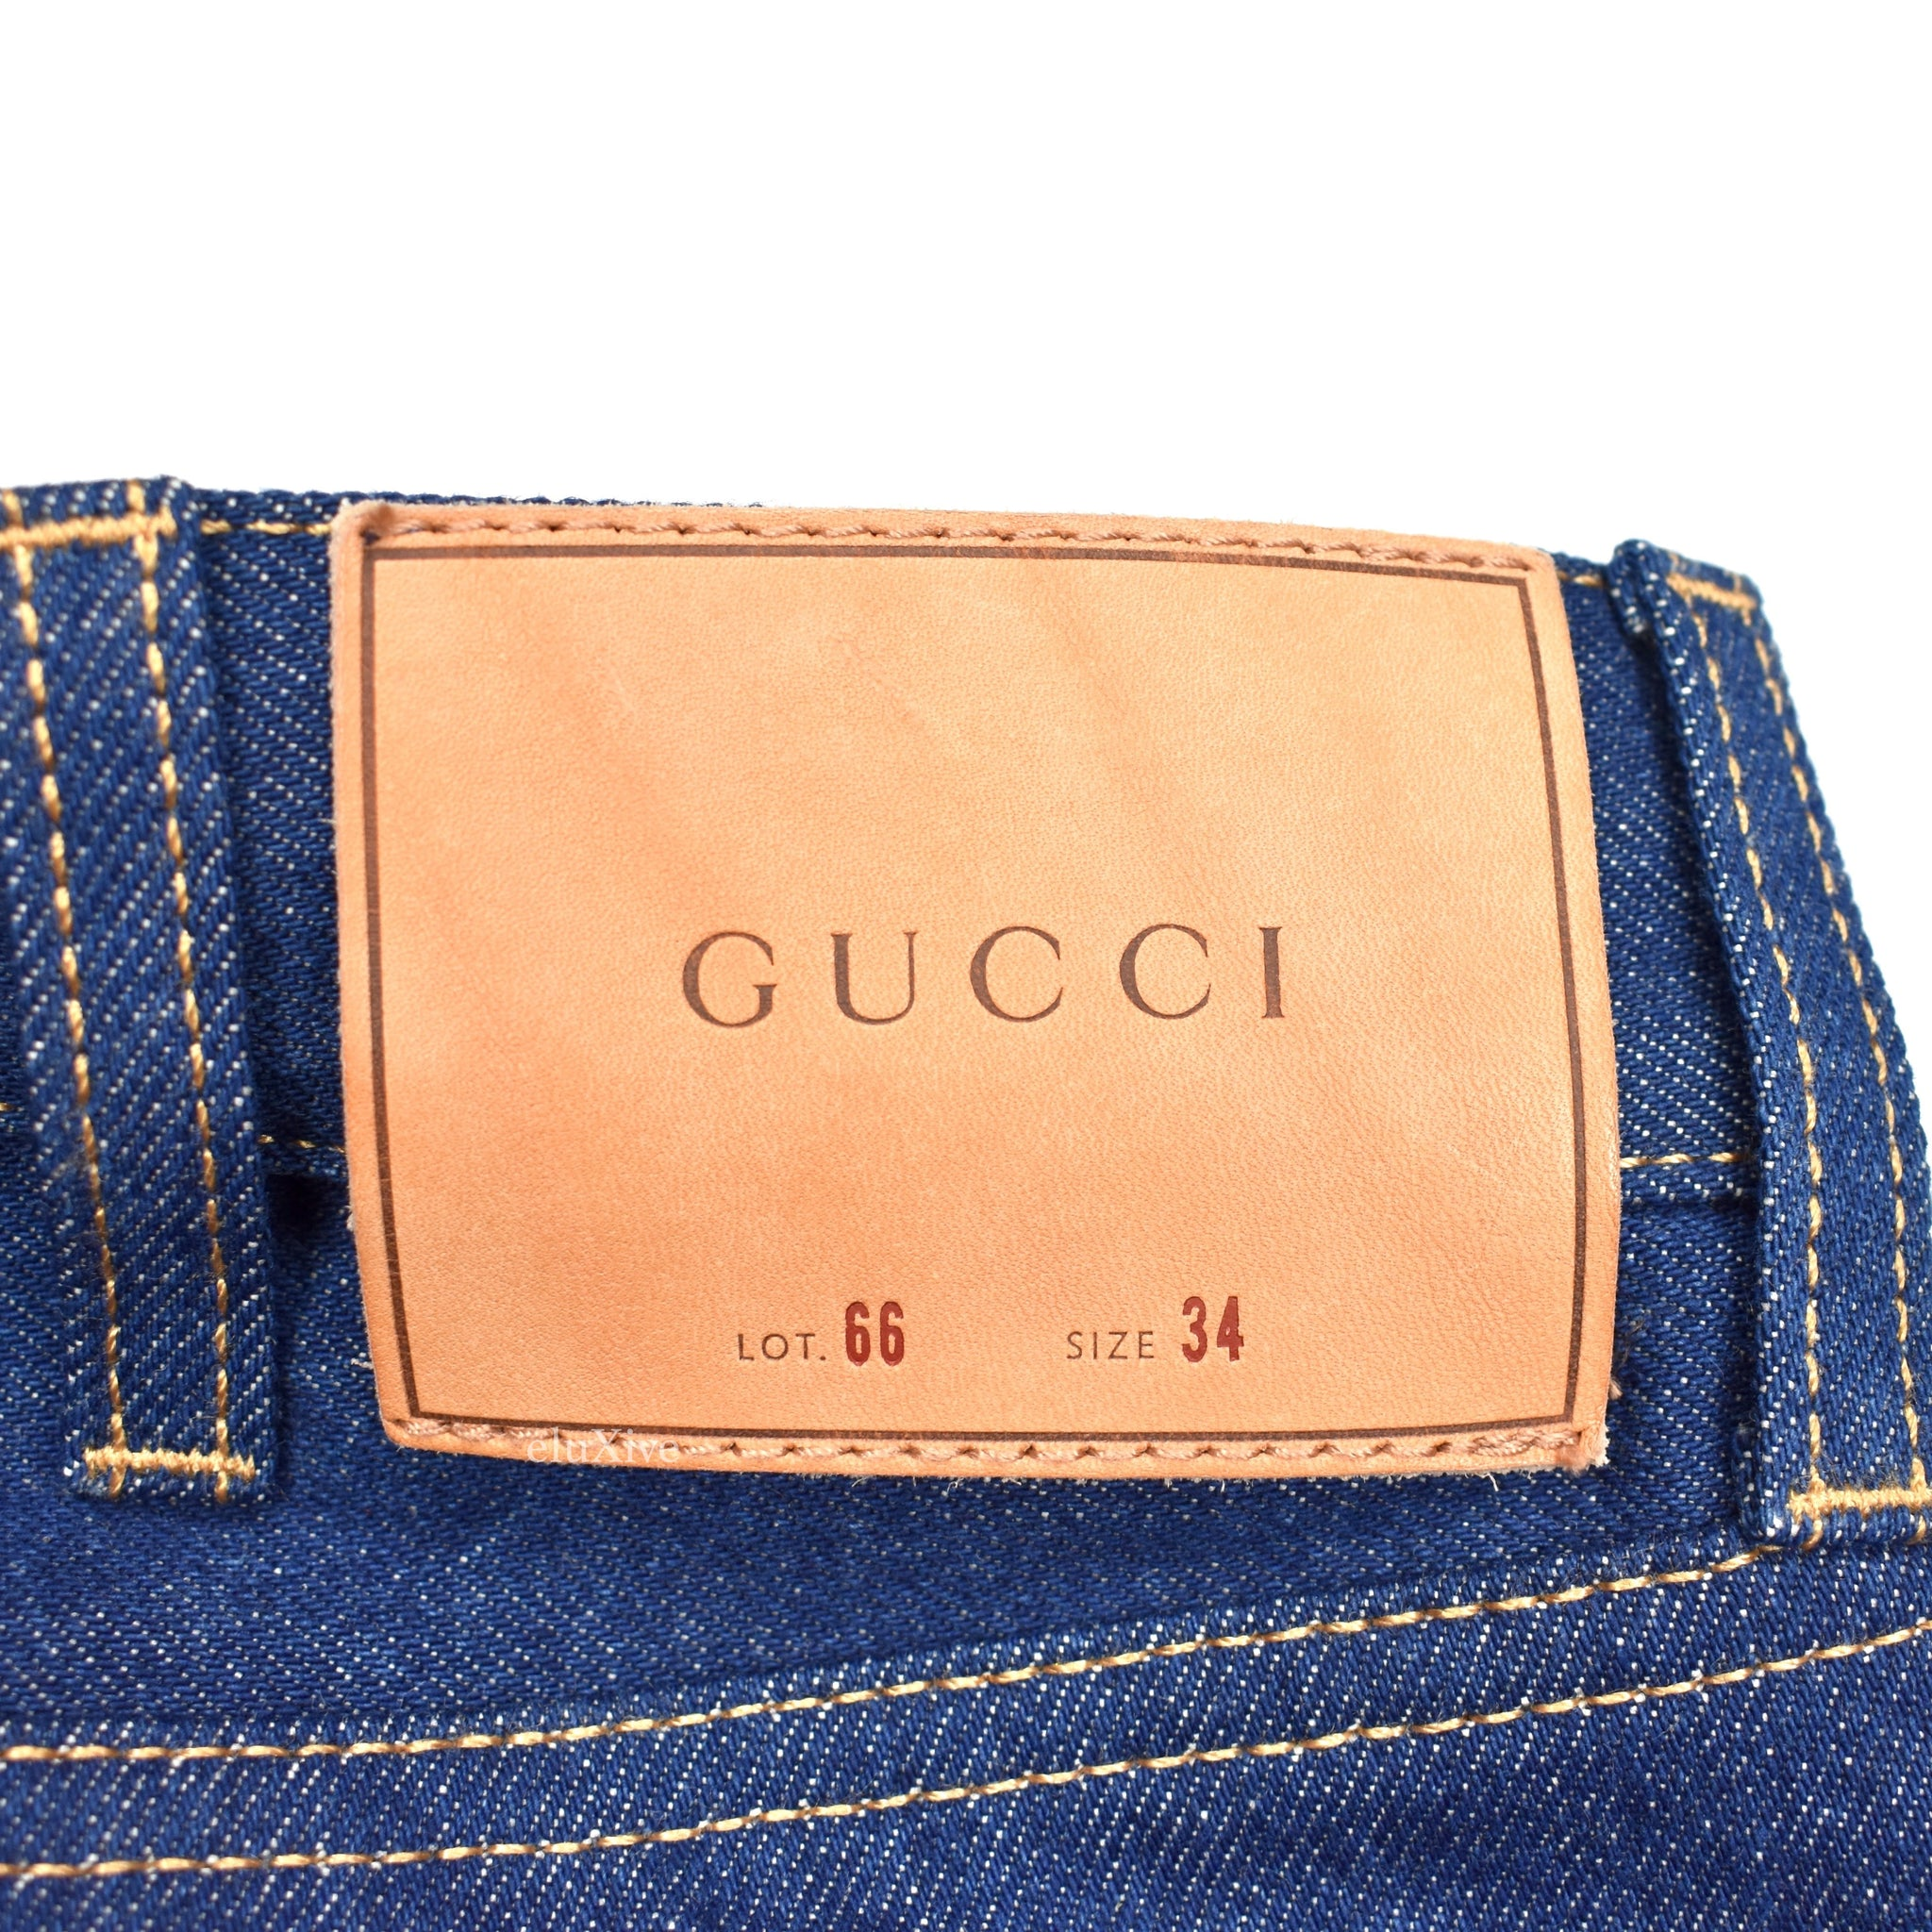 Gucci - Dark Blue Japanese Denim Jeans